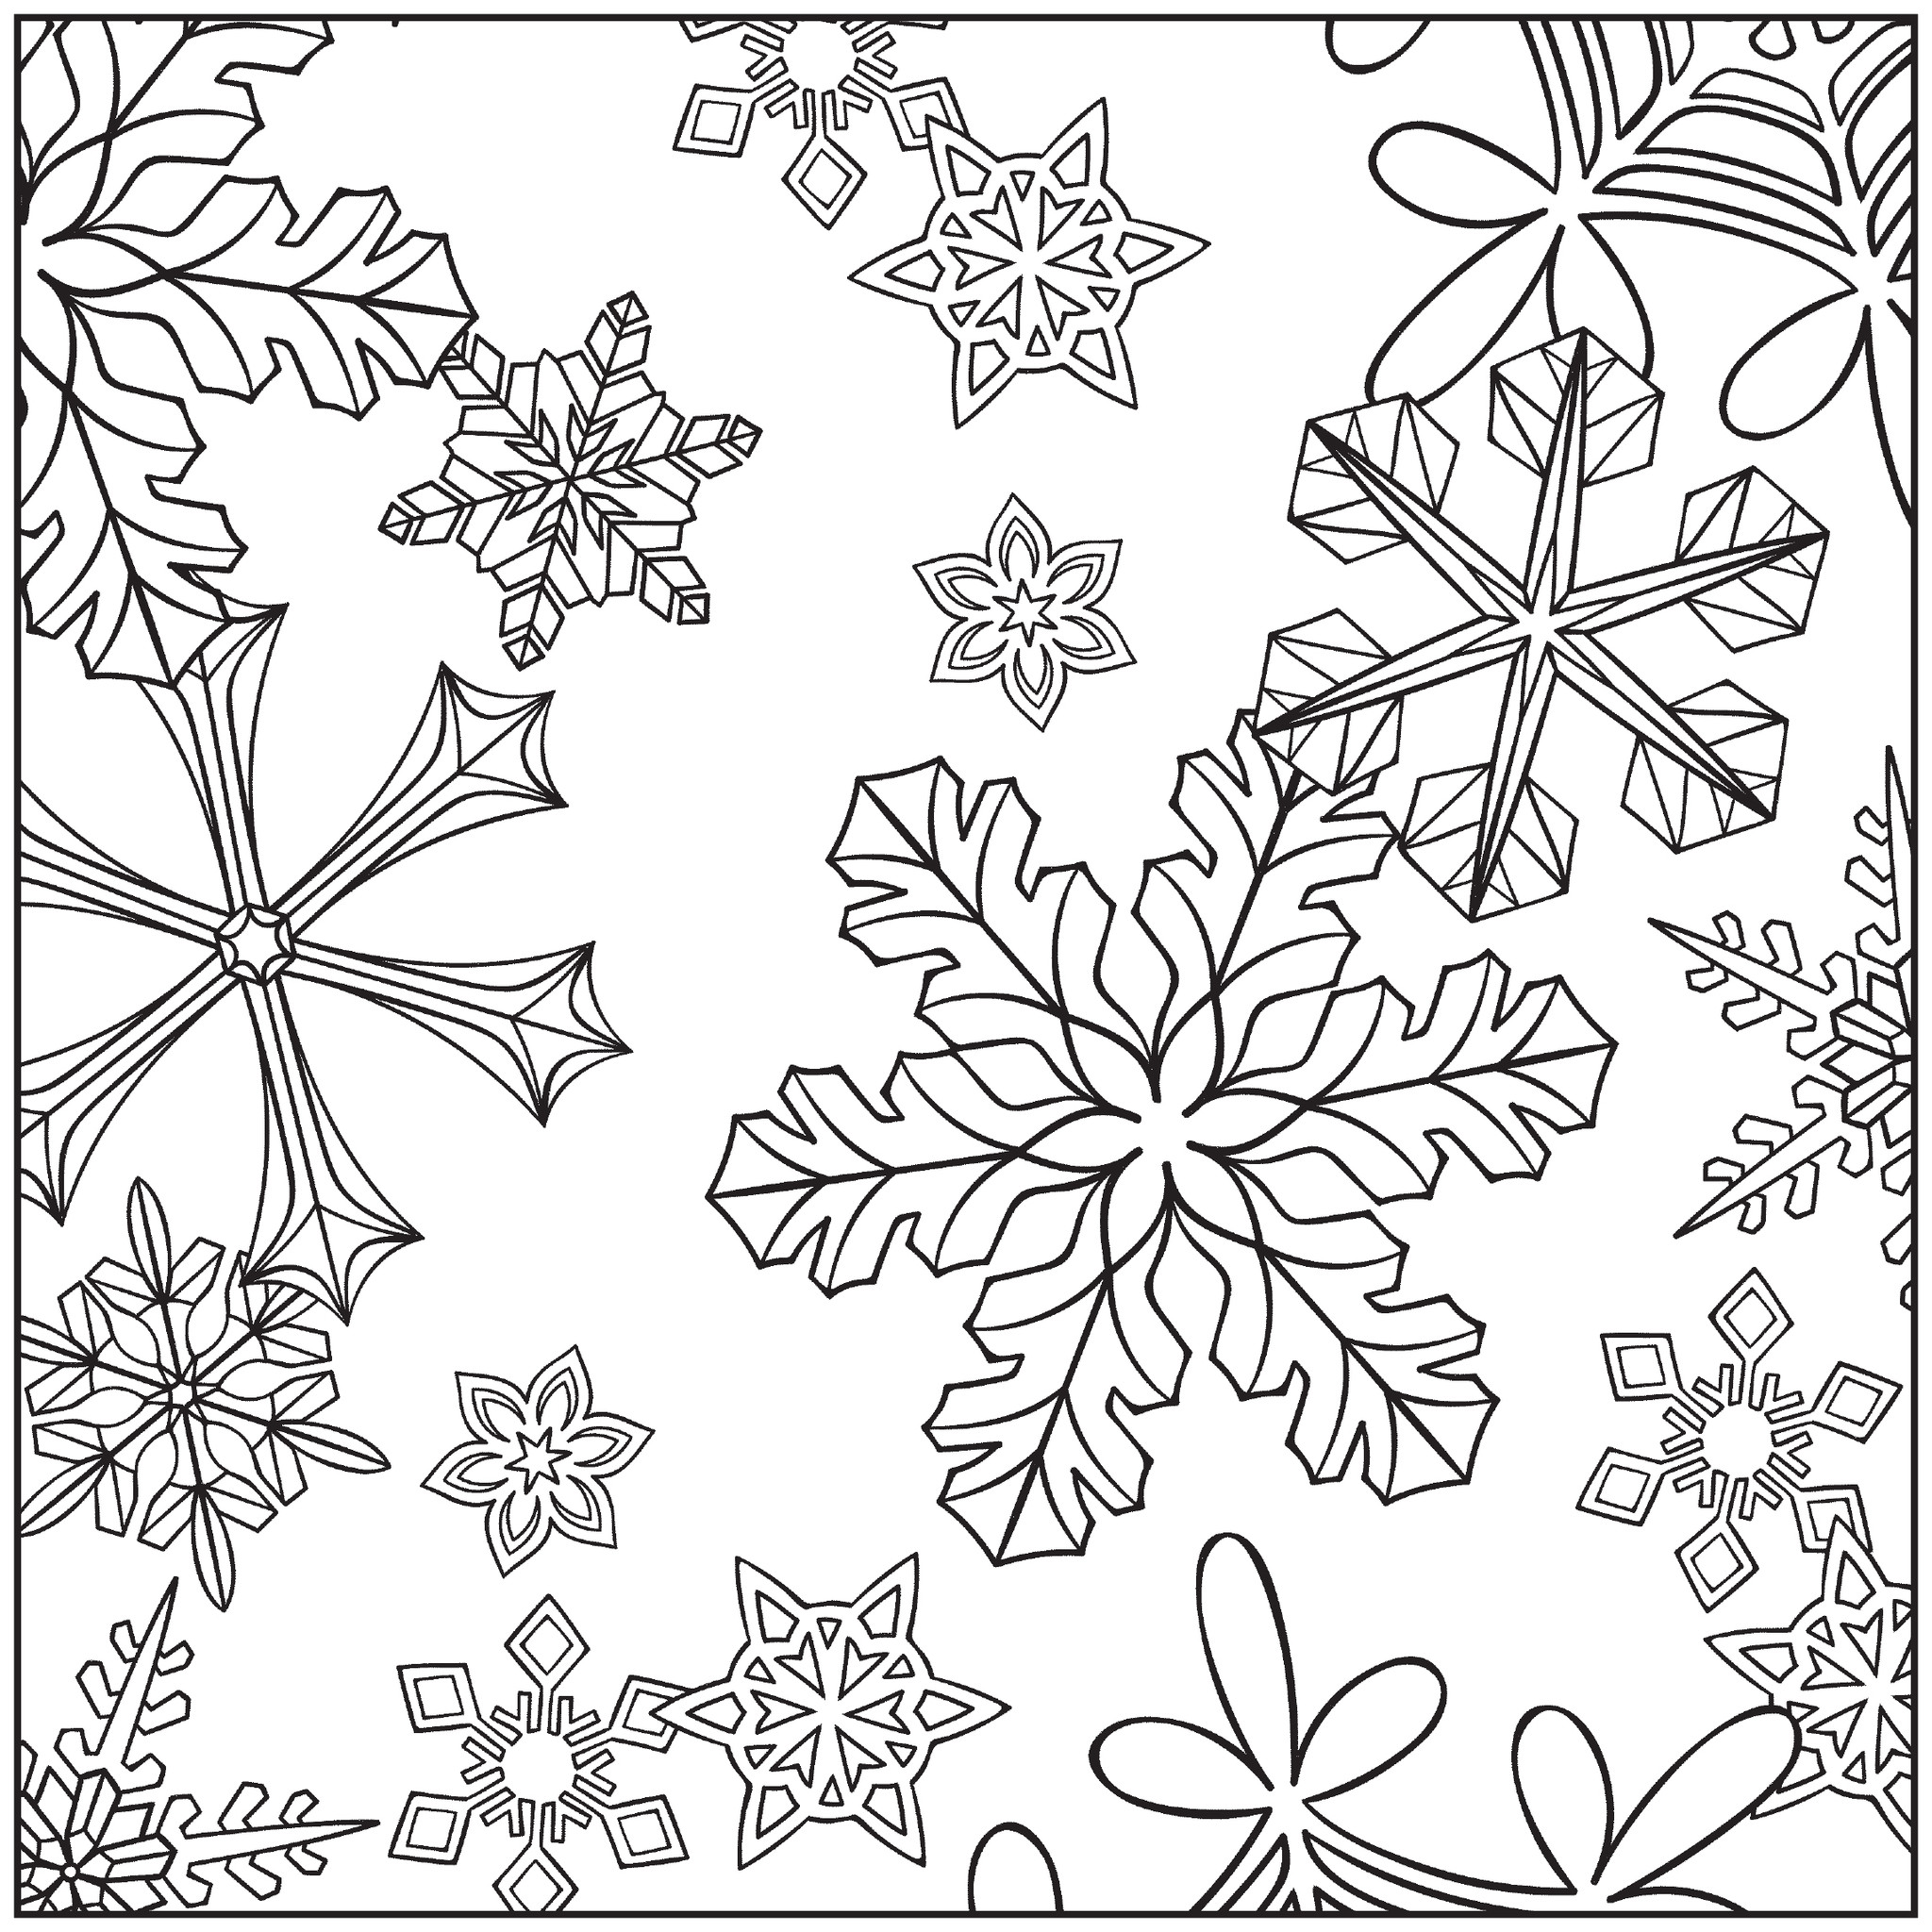 snow coloring pages free - photo#29